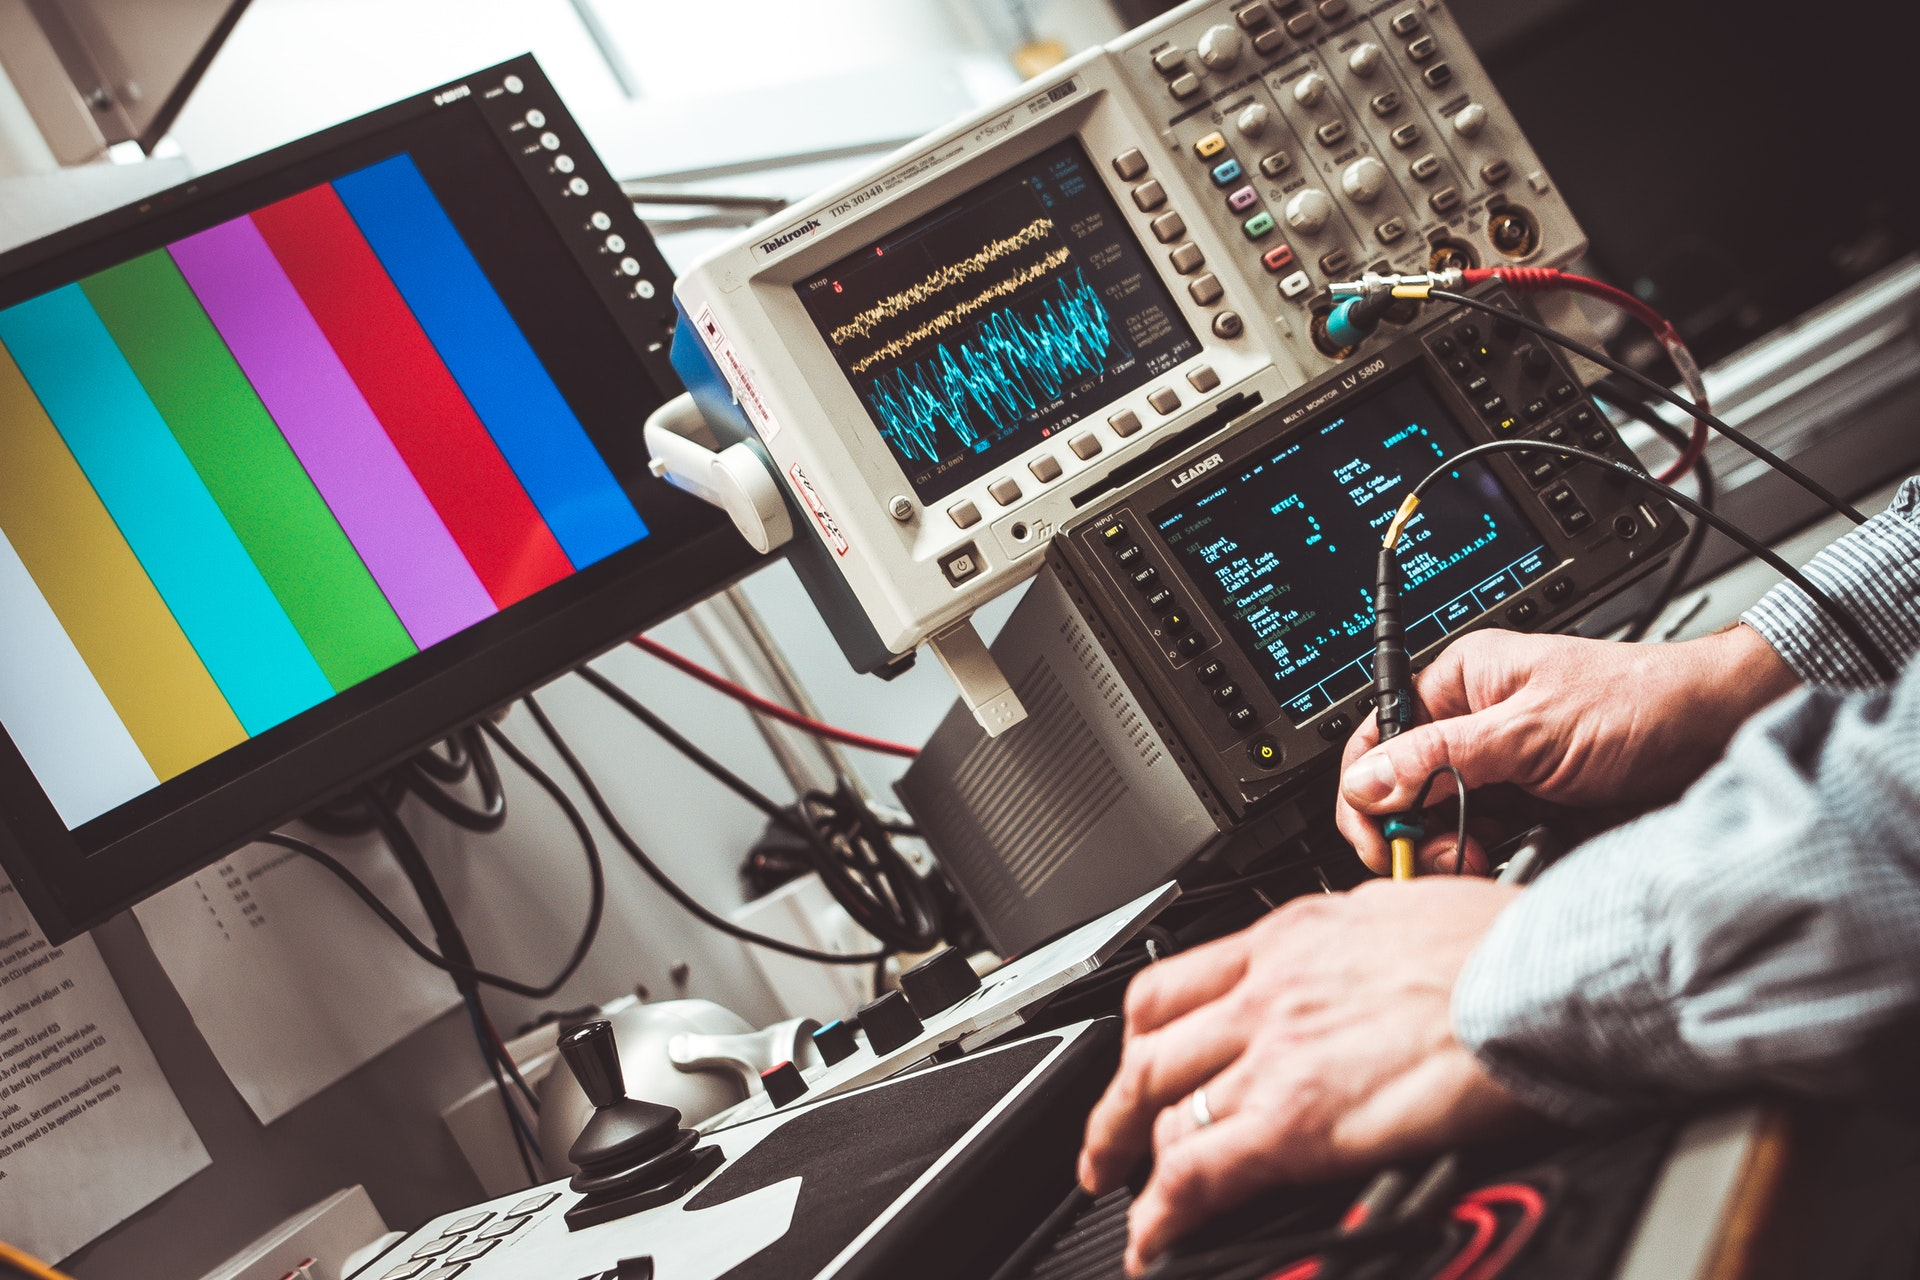 Man Testing Electrical Equipment - Electrical and Electronics Engineers - The 14 Best Engineering Jobs For The Future